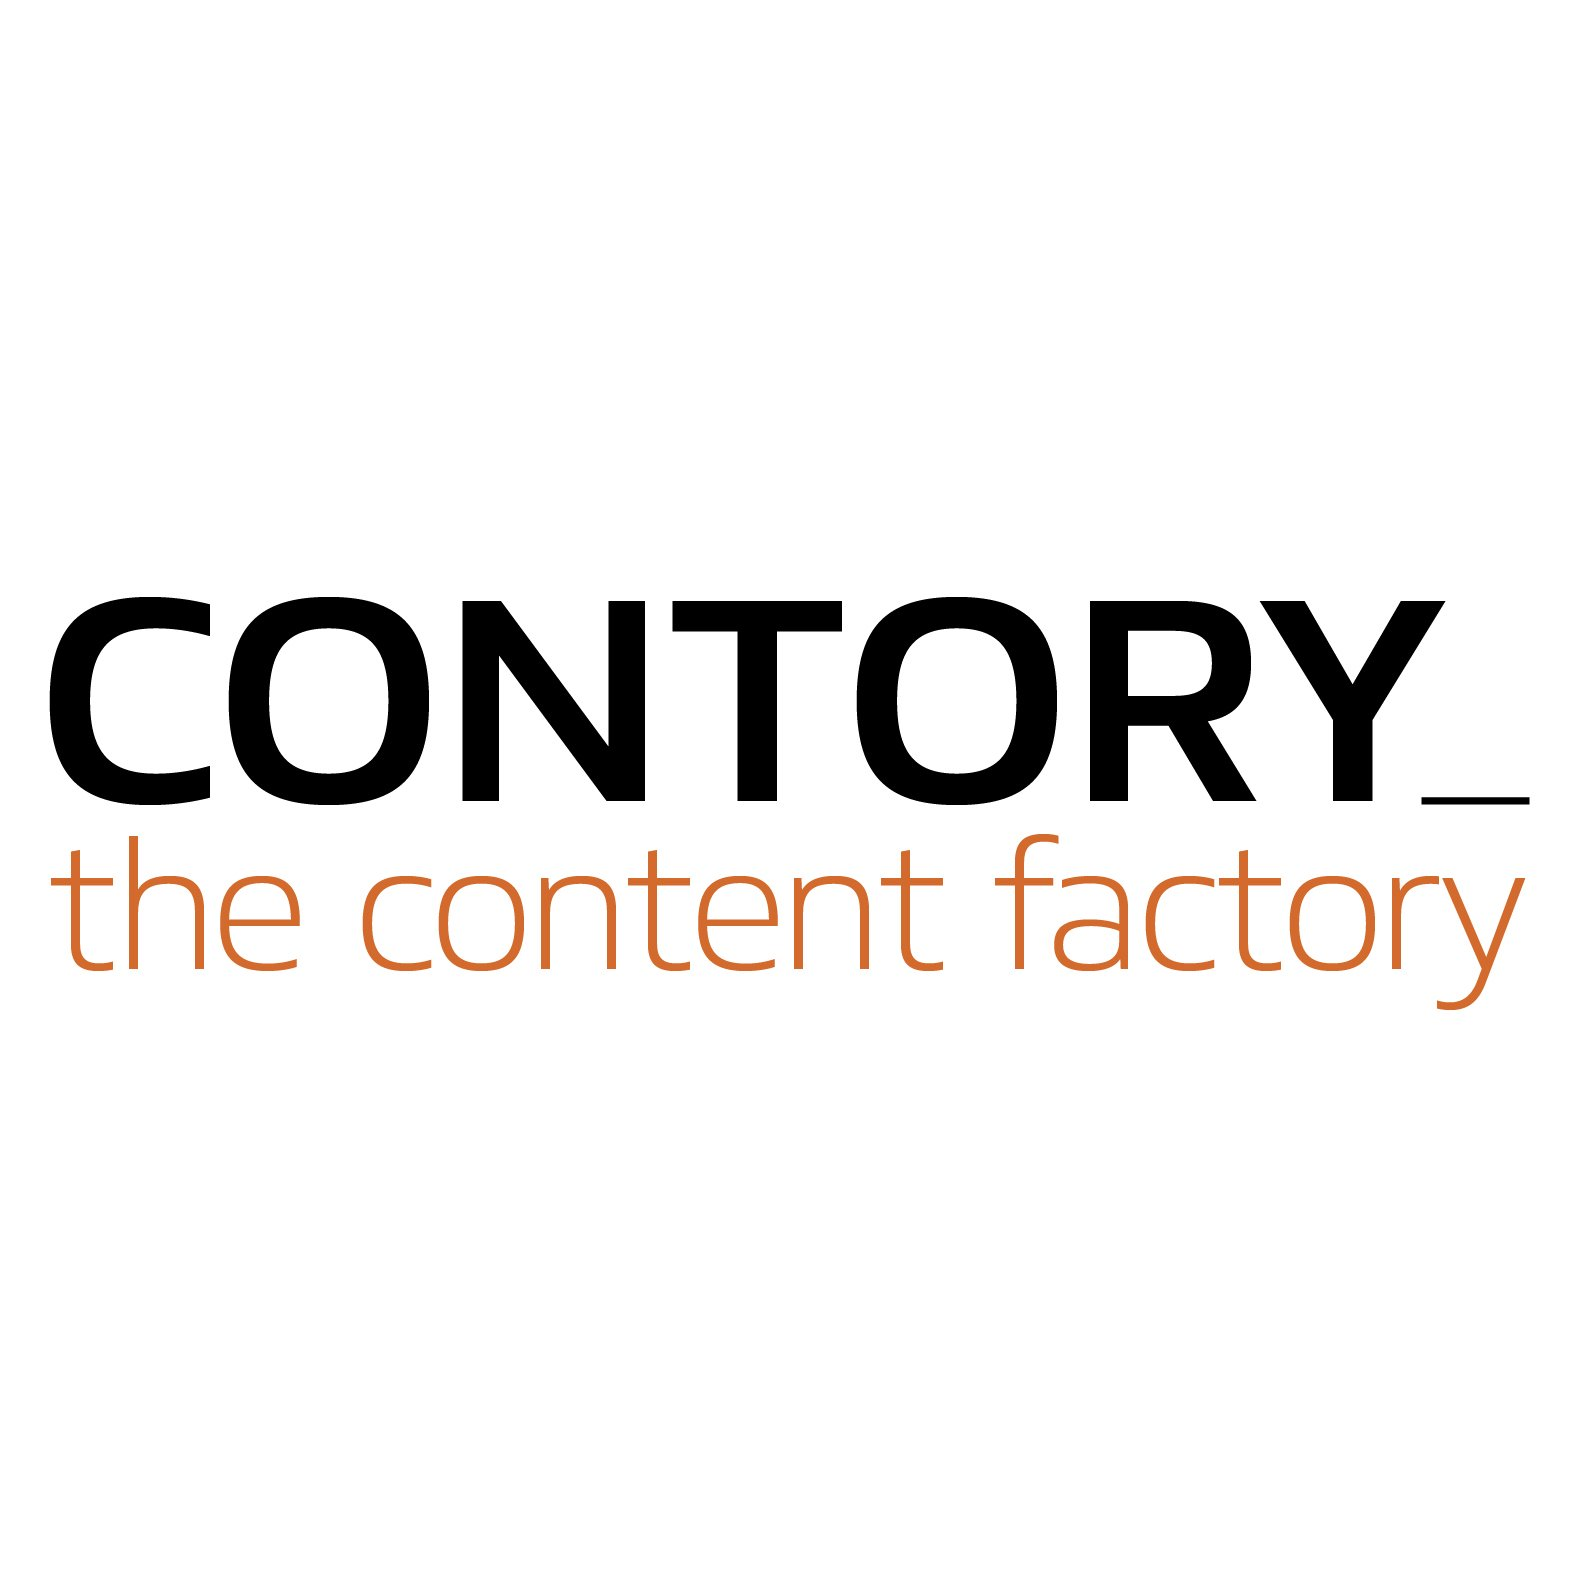 contory – The Content Factory